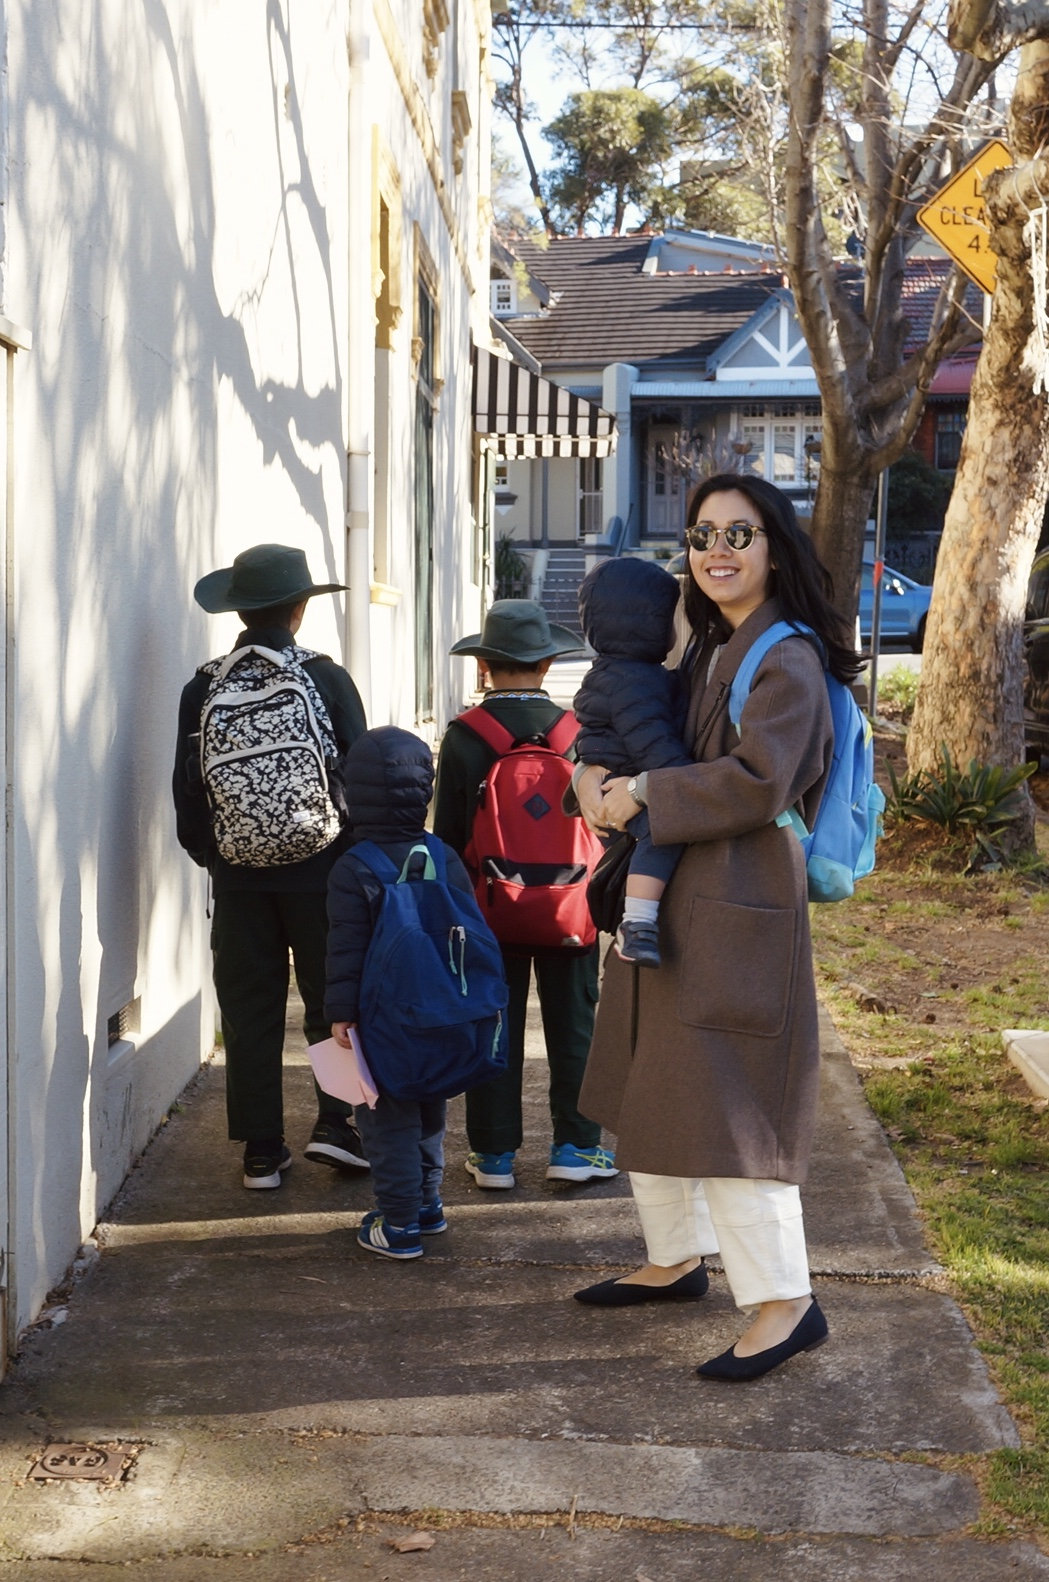 a day in the life of a working mum, sydney based lawyer and fashion blogger with 4 boys